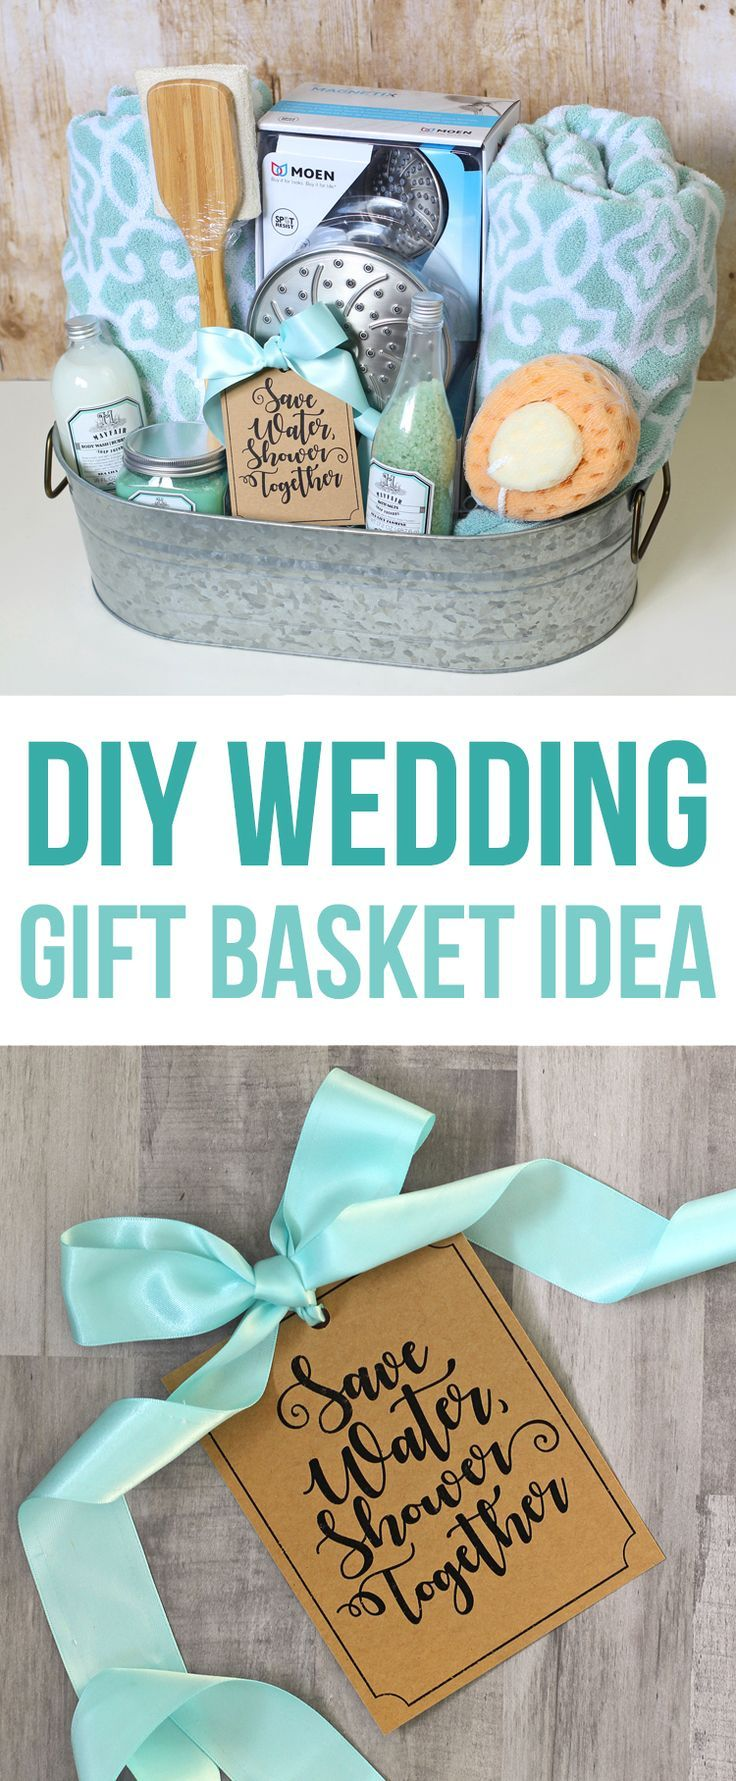 Creative Wedding Gift Basket Ideas : ... gifts unique wedding gifts unique weddings wedding gift baskets diy